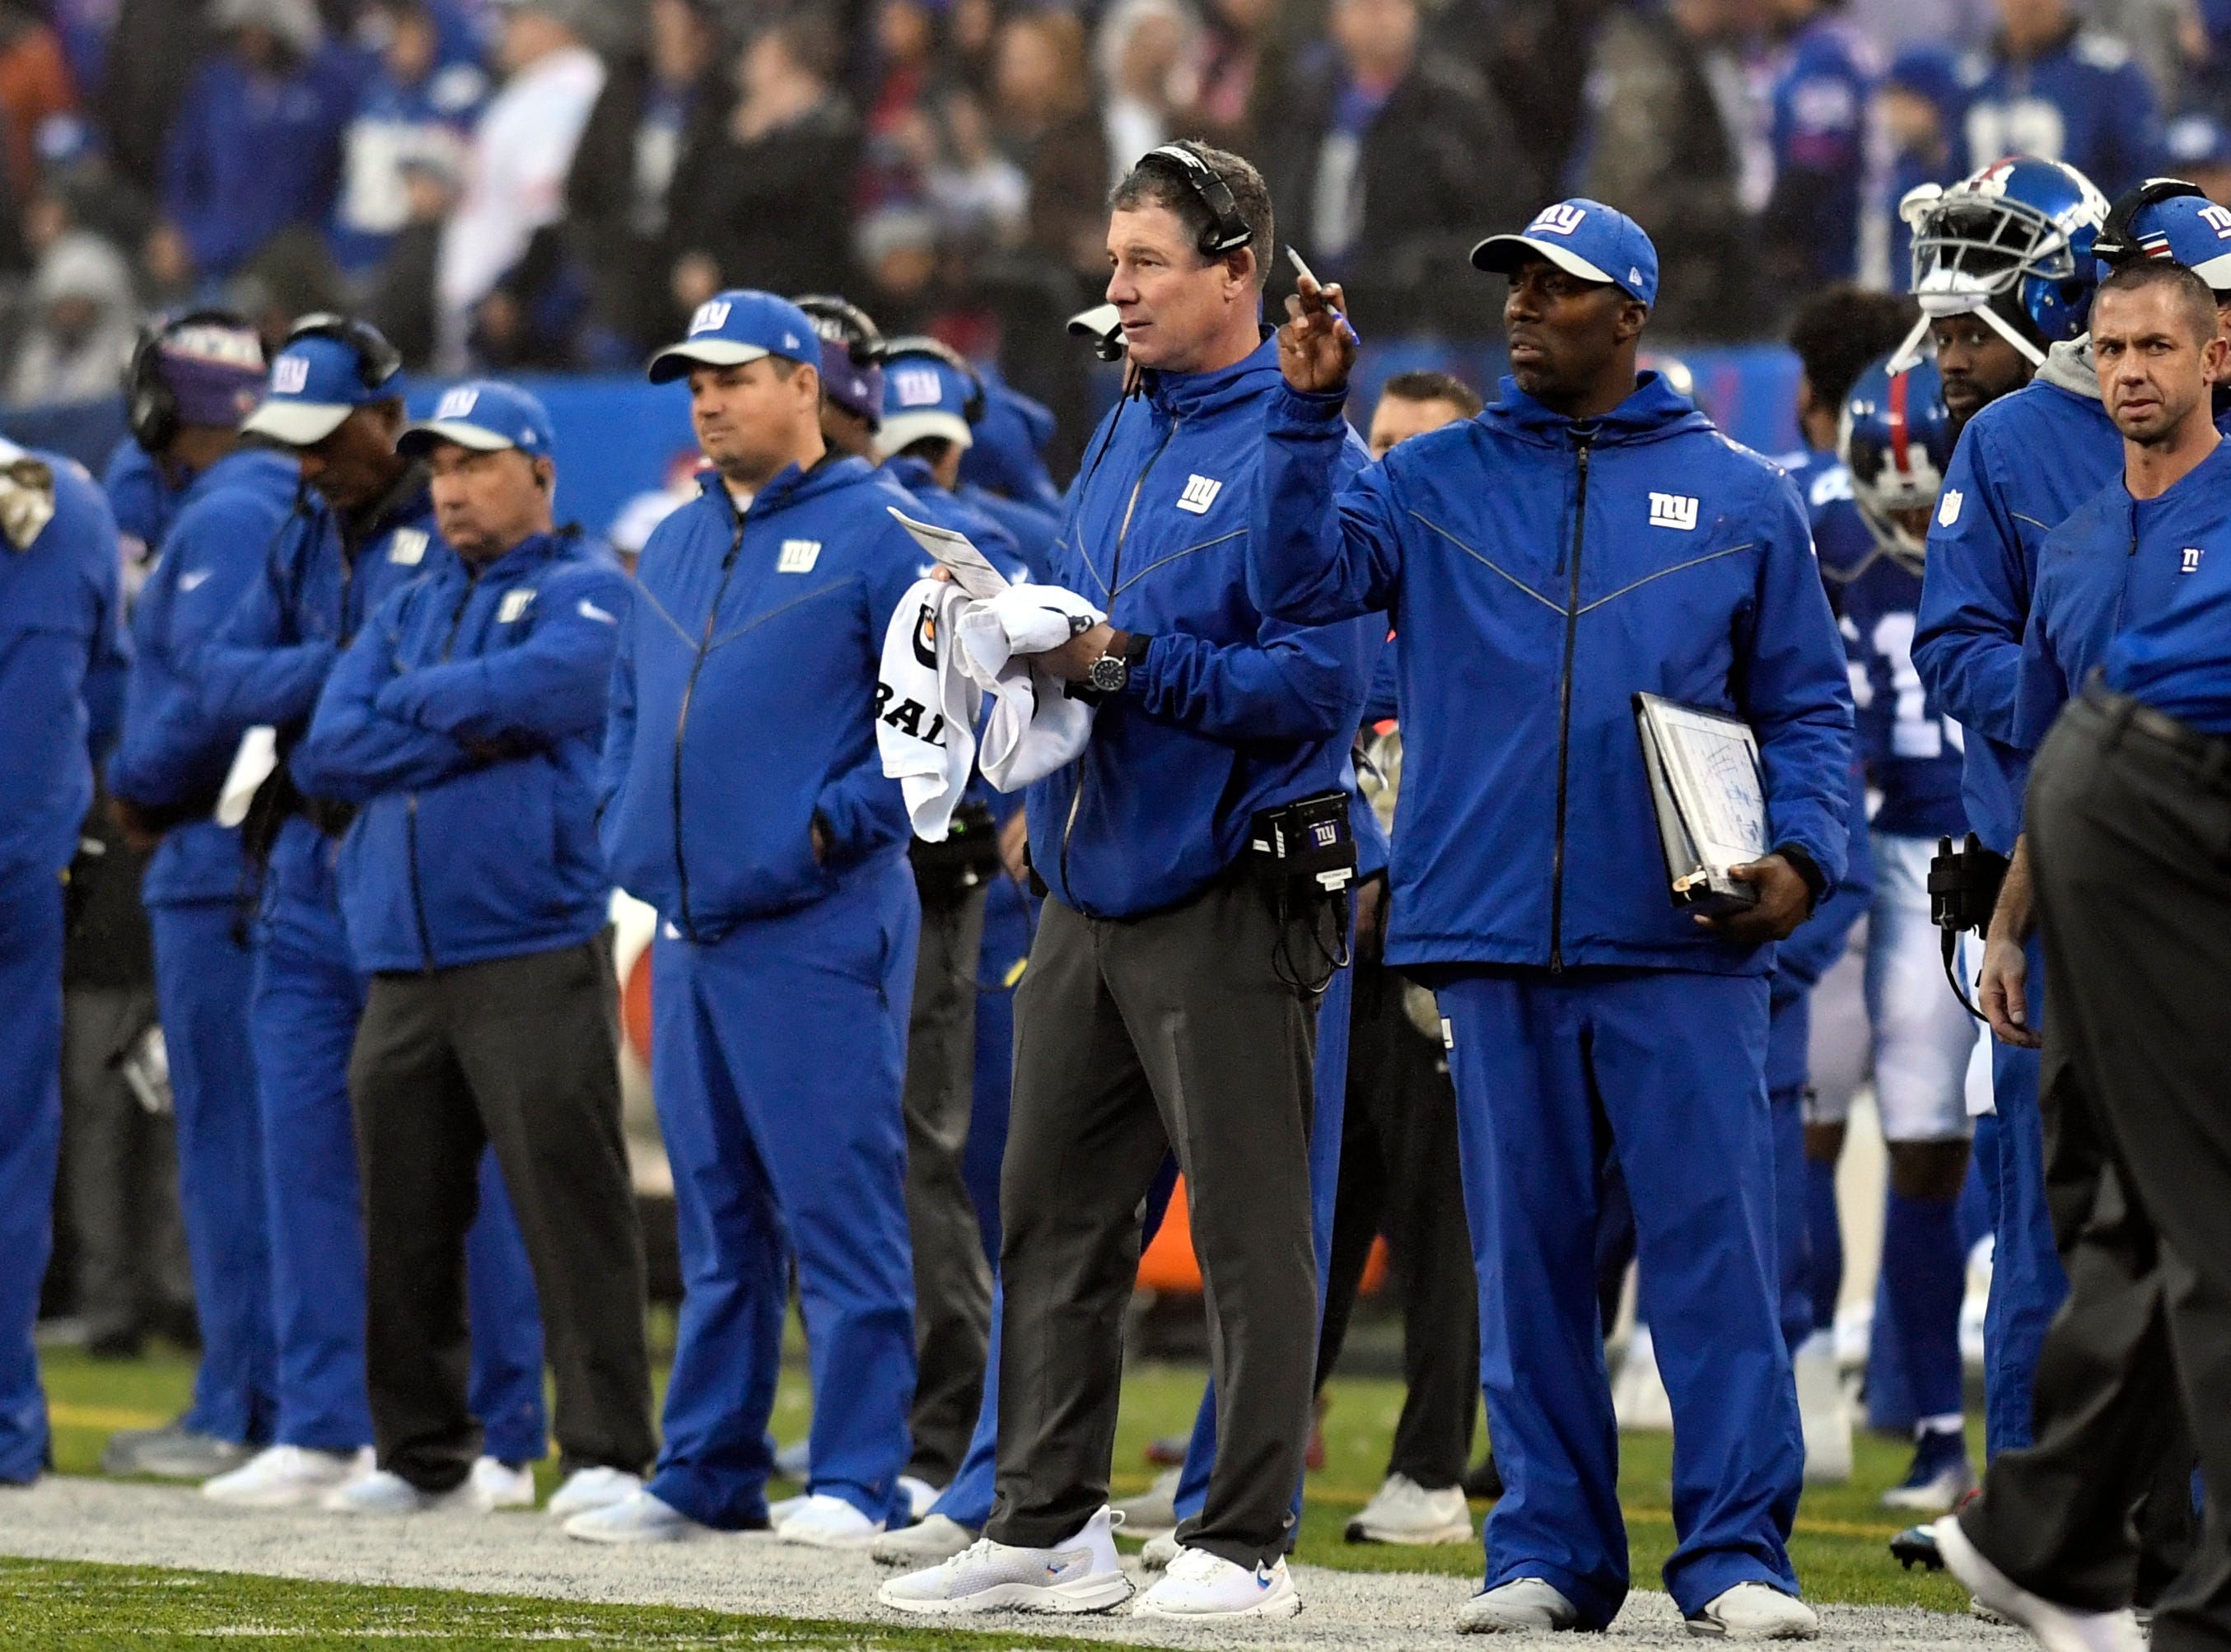 New York Giants head coach Pat Shurmur (headset) on the sideline in the second half. The New York Giants defeat the Chicago Bears in overtime 30-27 on Sunday, Dec. 2, 2018, in East Rutherford.